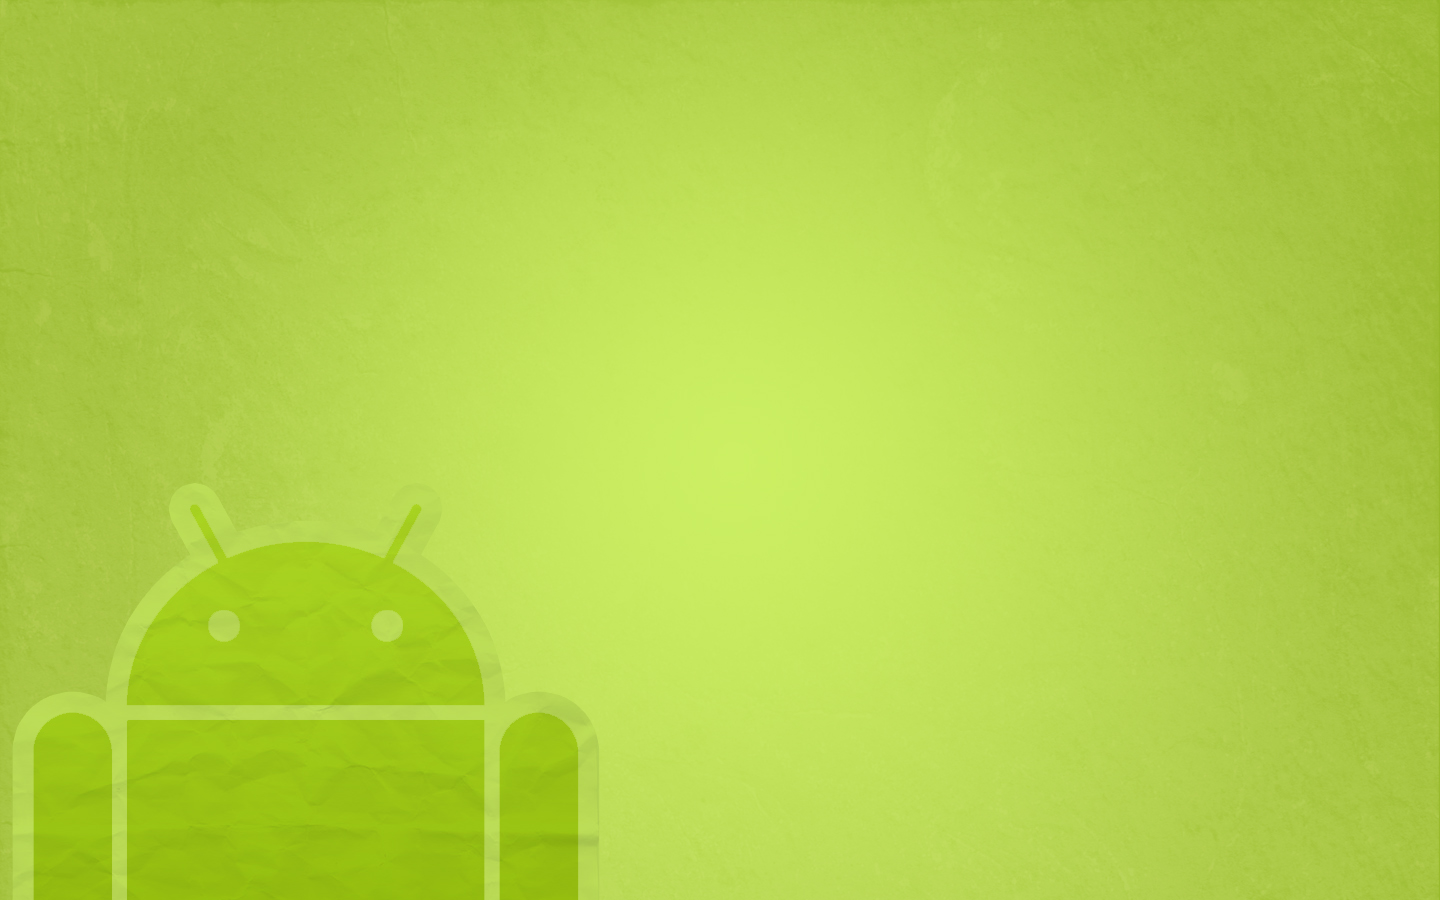 Android Wallpapers PC